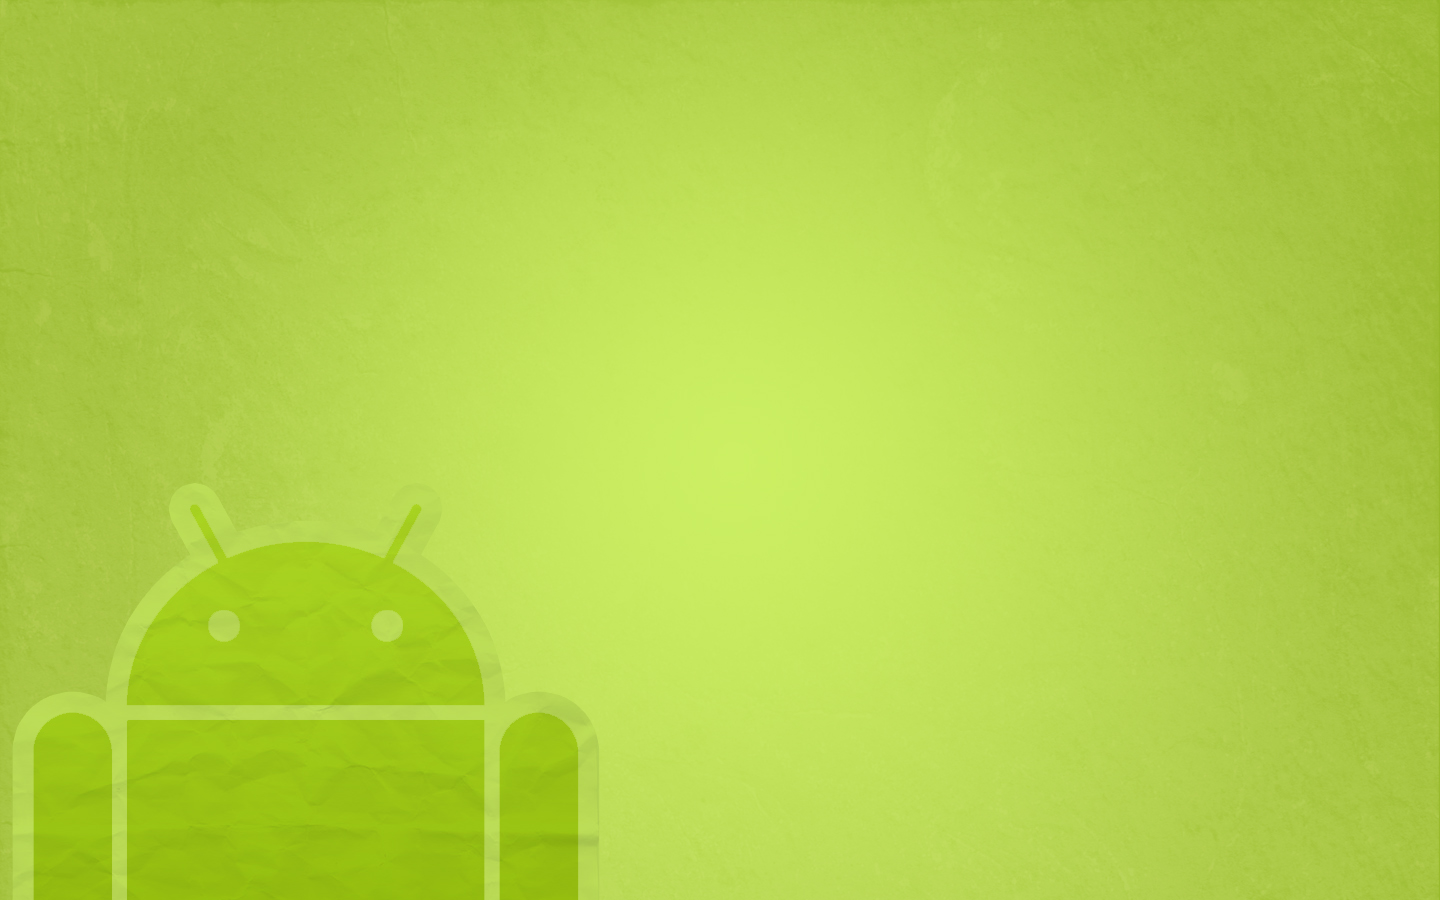 Android Wallpapers PC